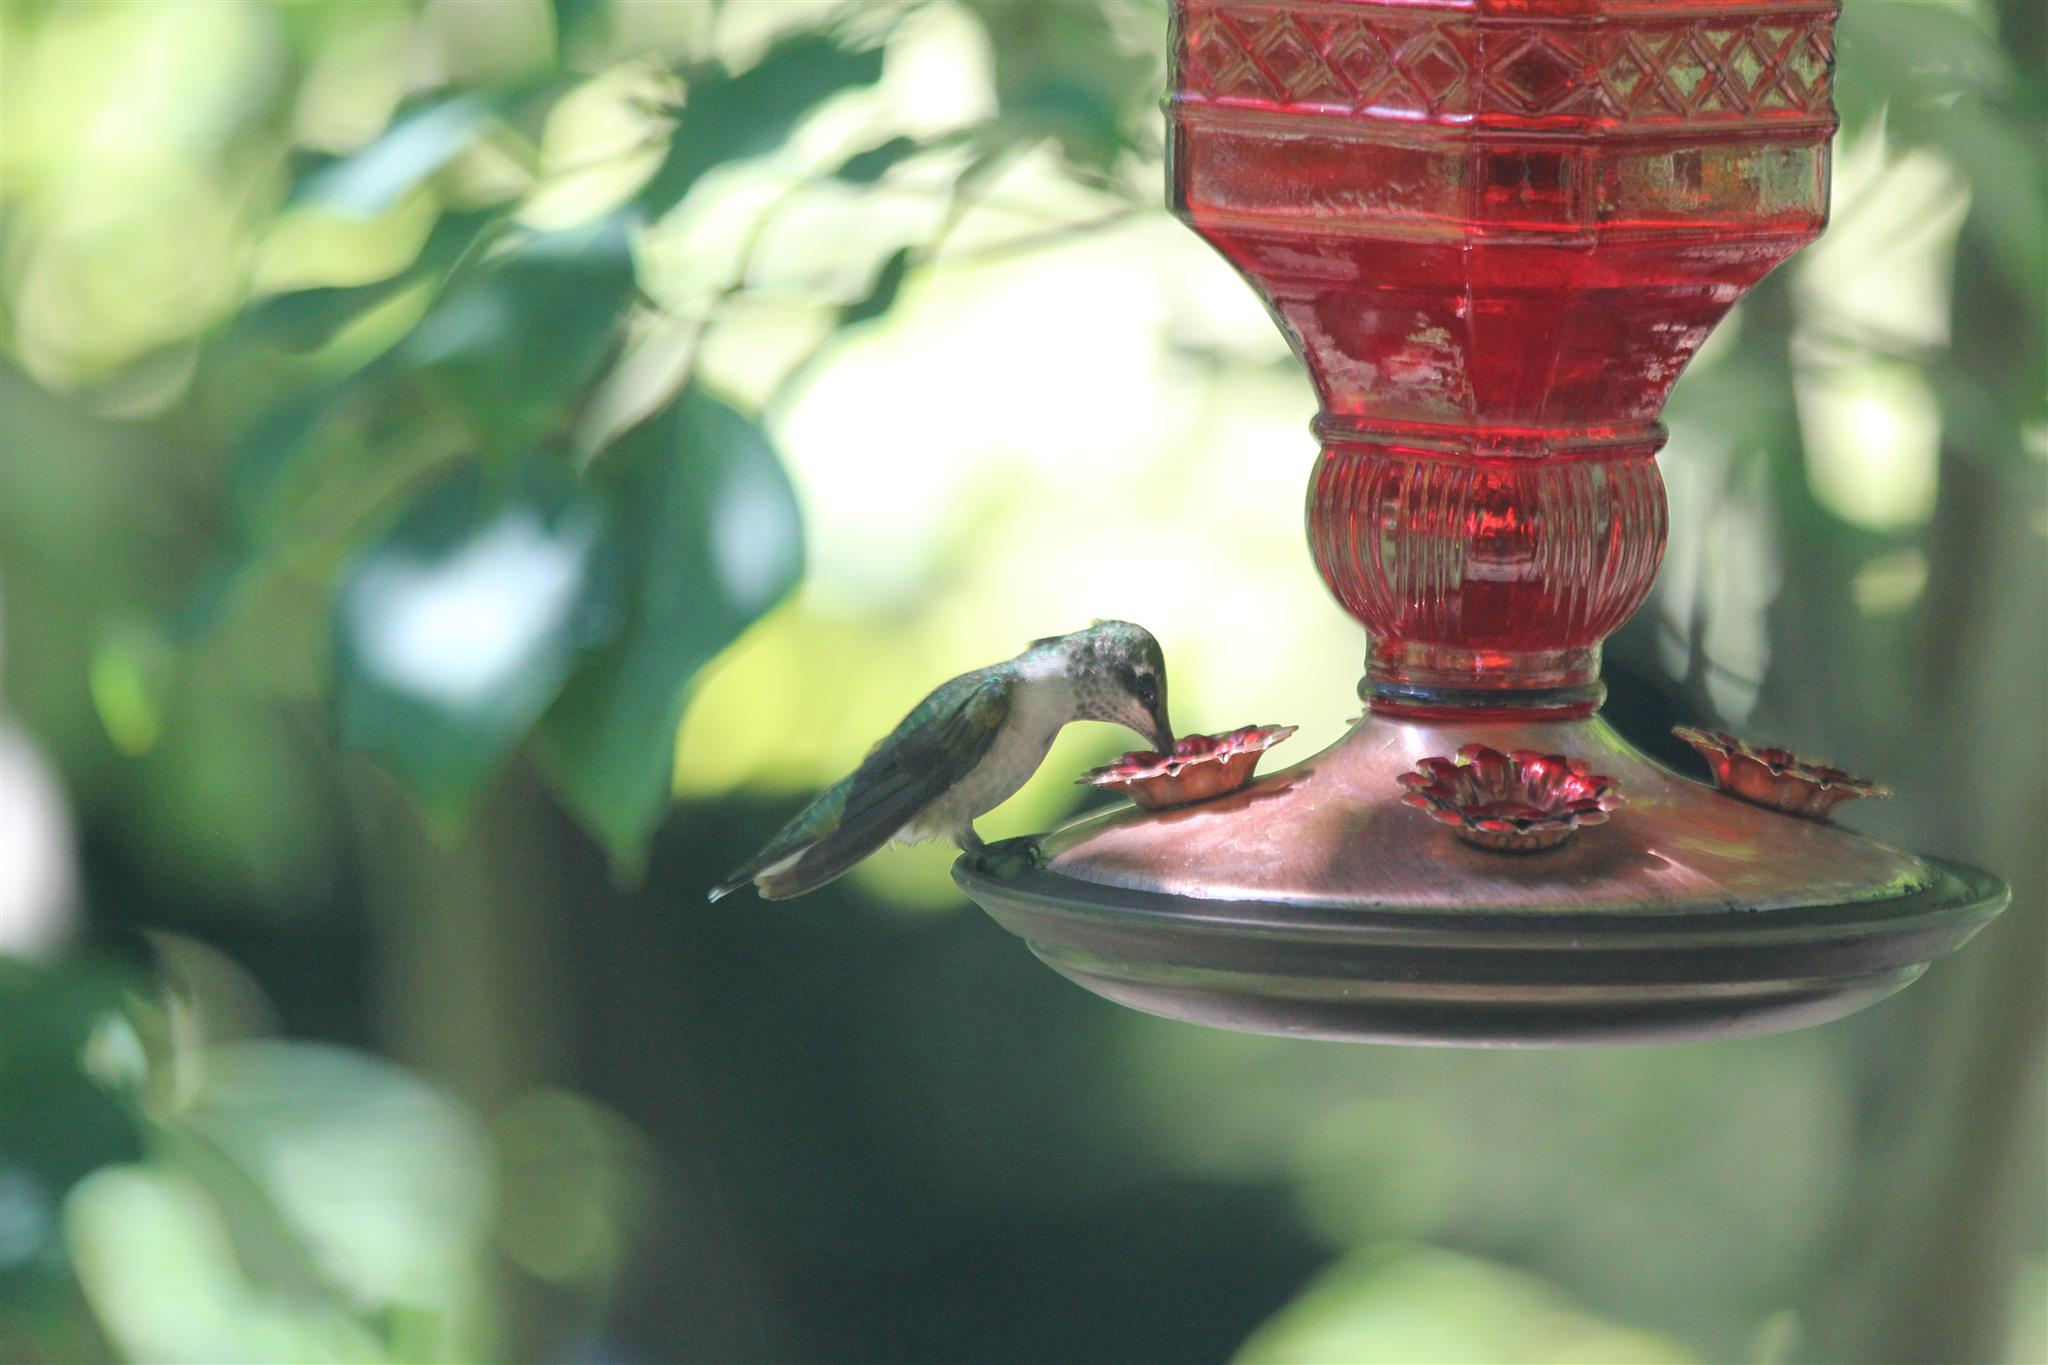 Hummingbird perched at rest on hummingbird feeder